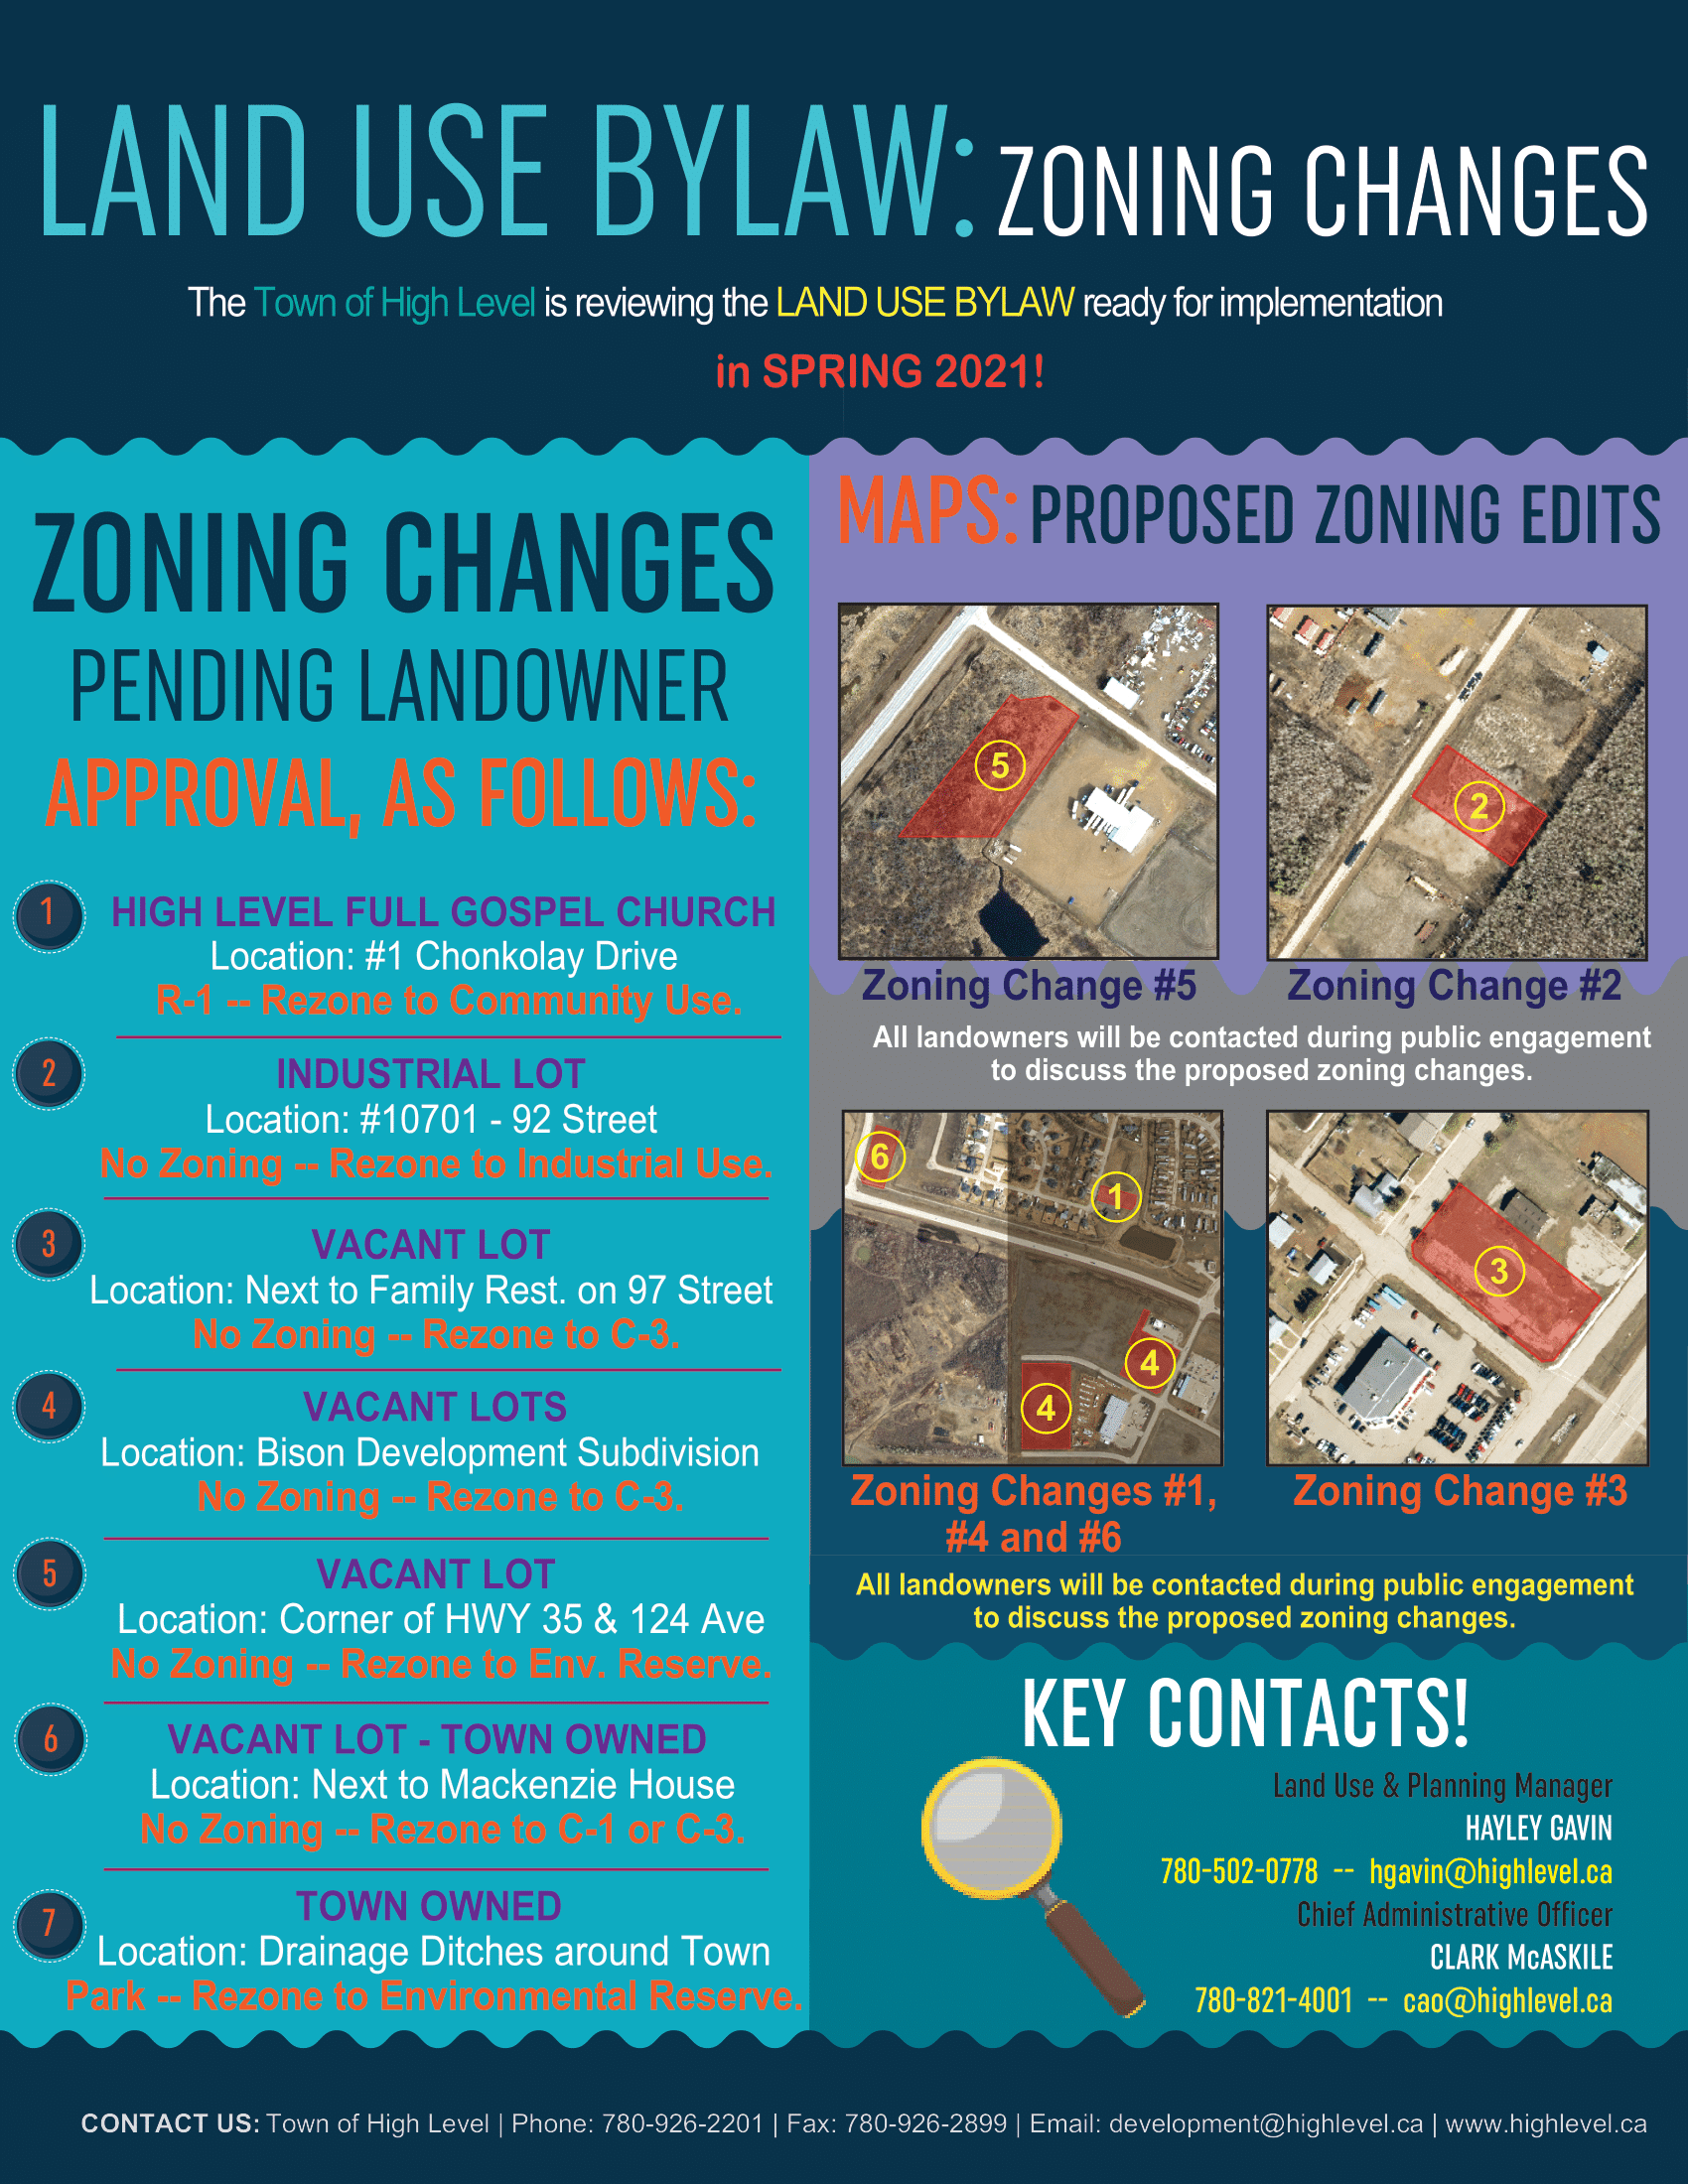 ZoningChanges_LUB_One-Pager10_FINAL